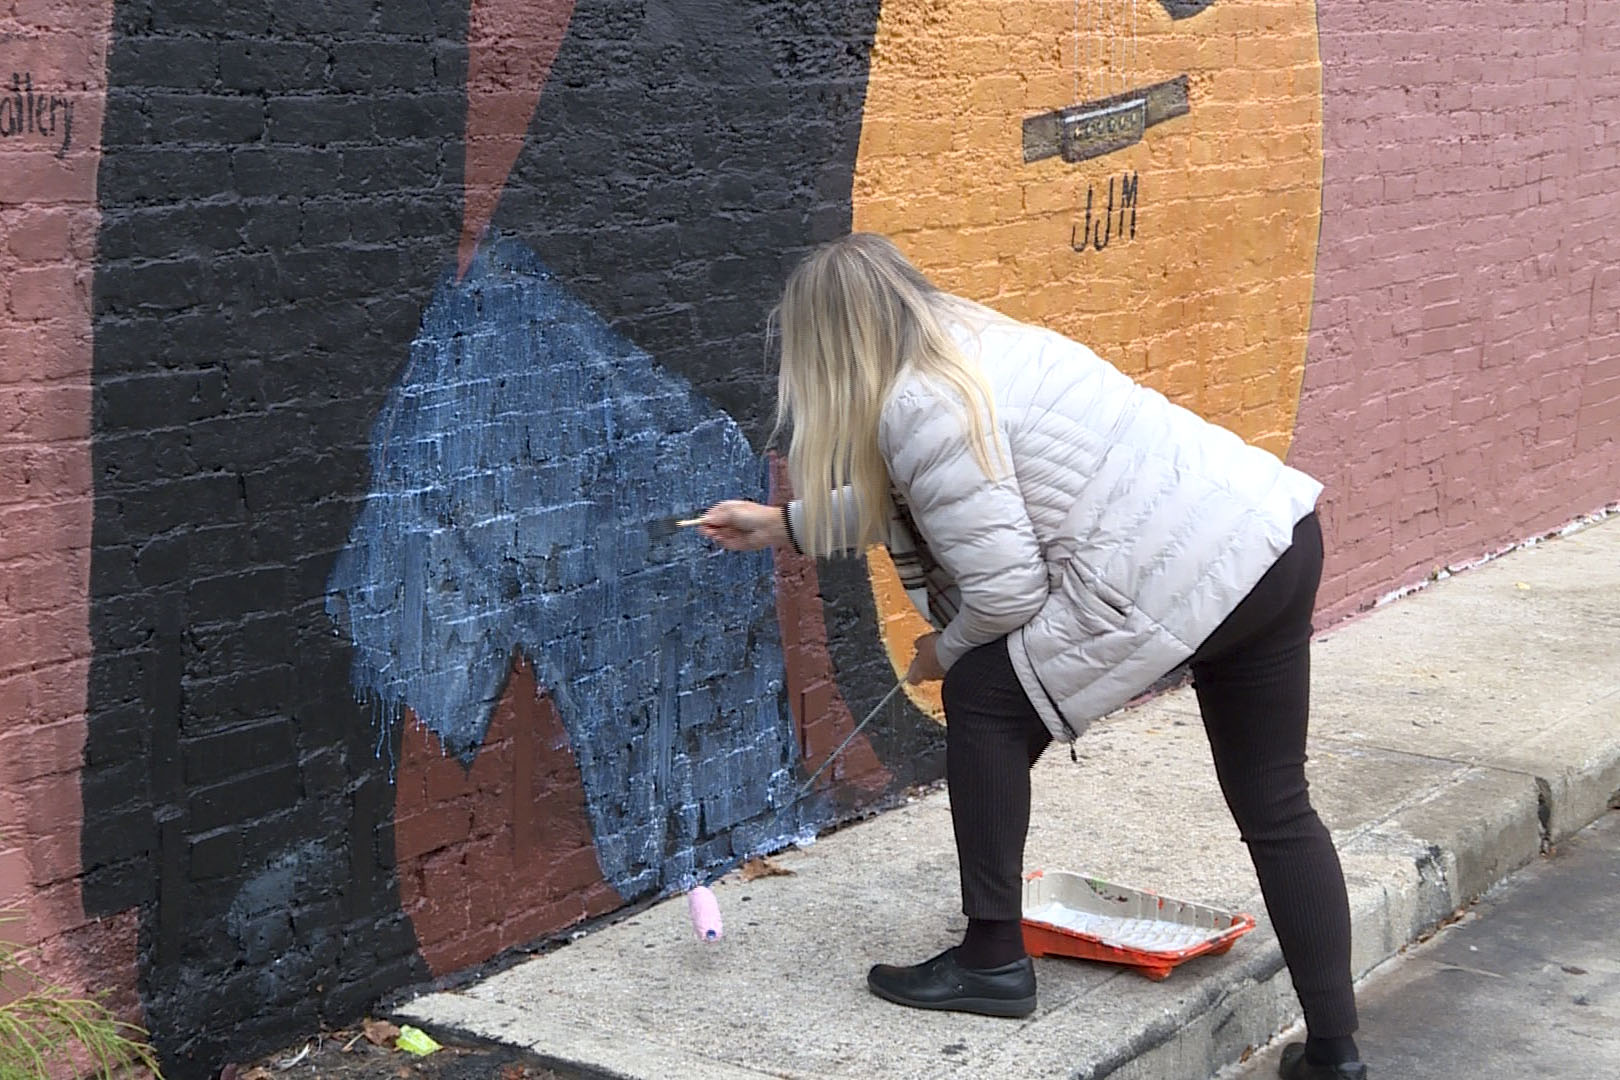 Pamela Bliss, mural artist, cleans up mellencamp's shoe, finishing her larger-than-life mural of him